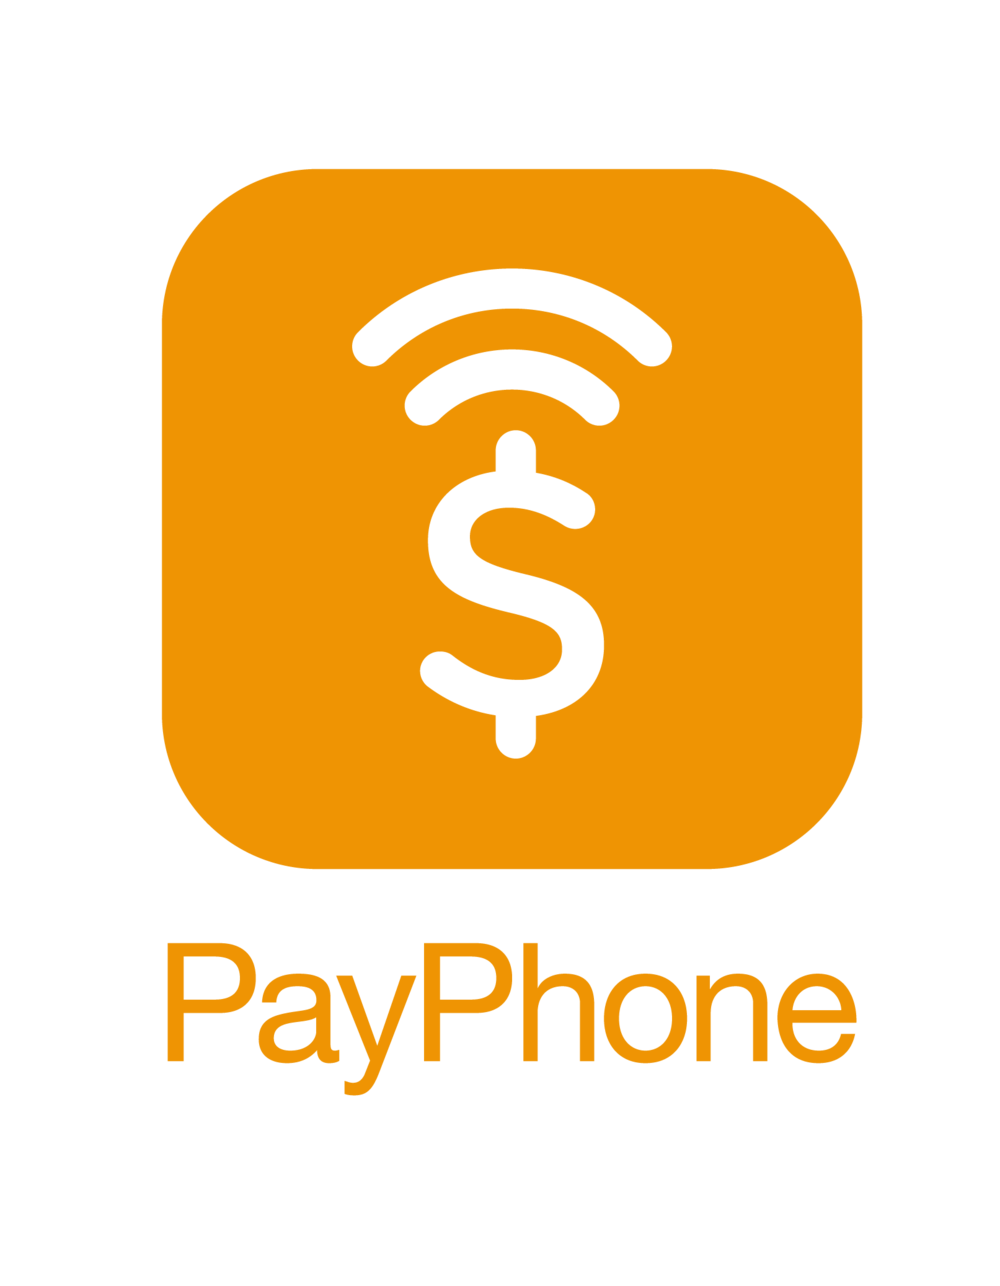 PayPhone-01.png